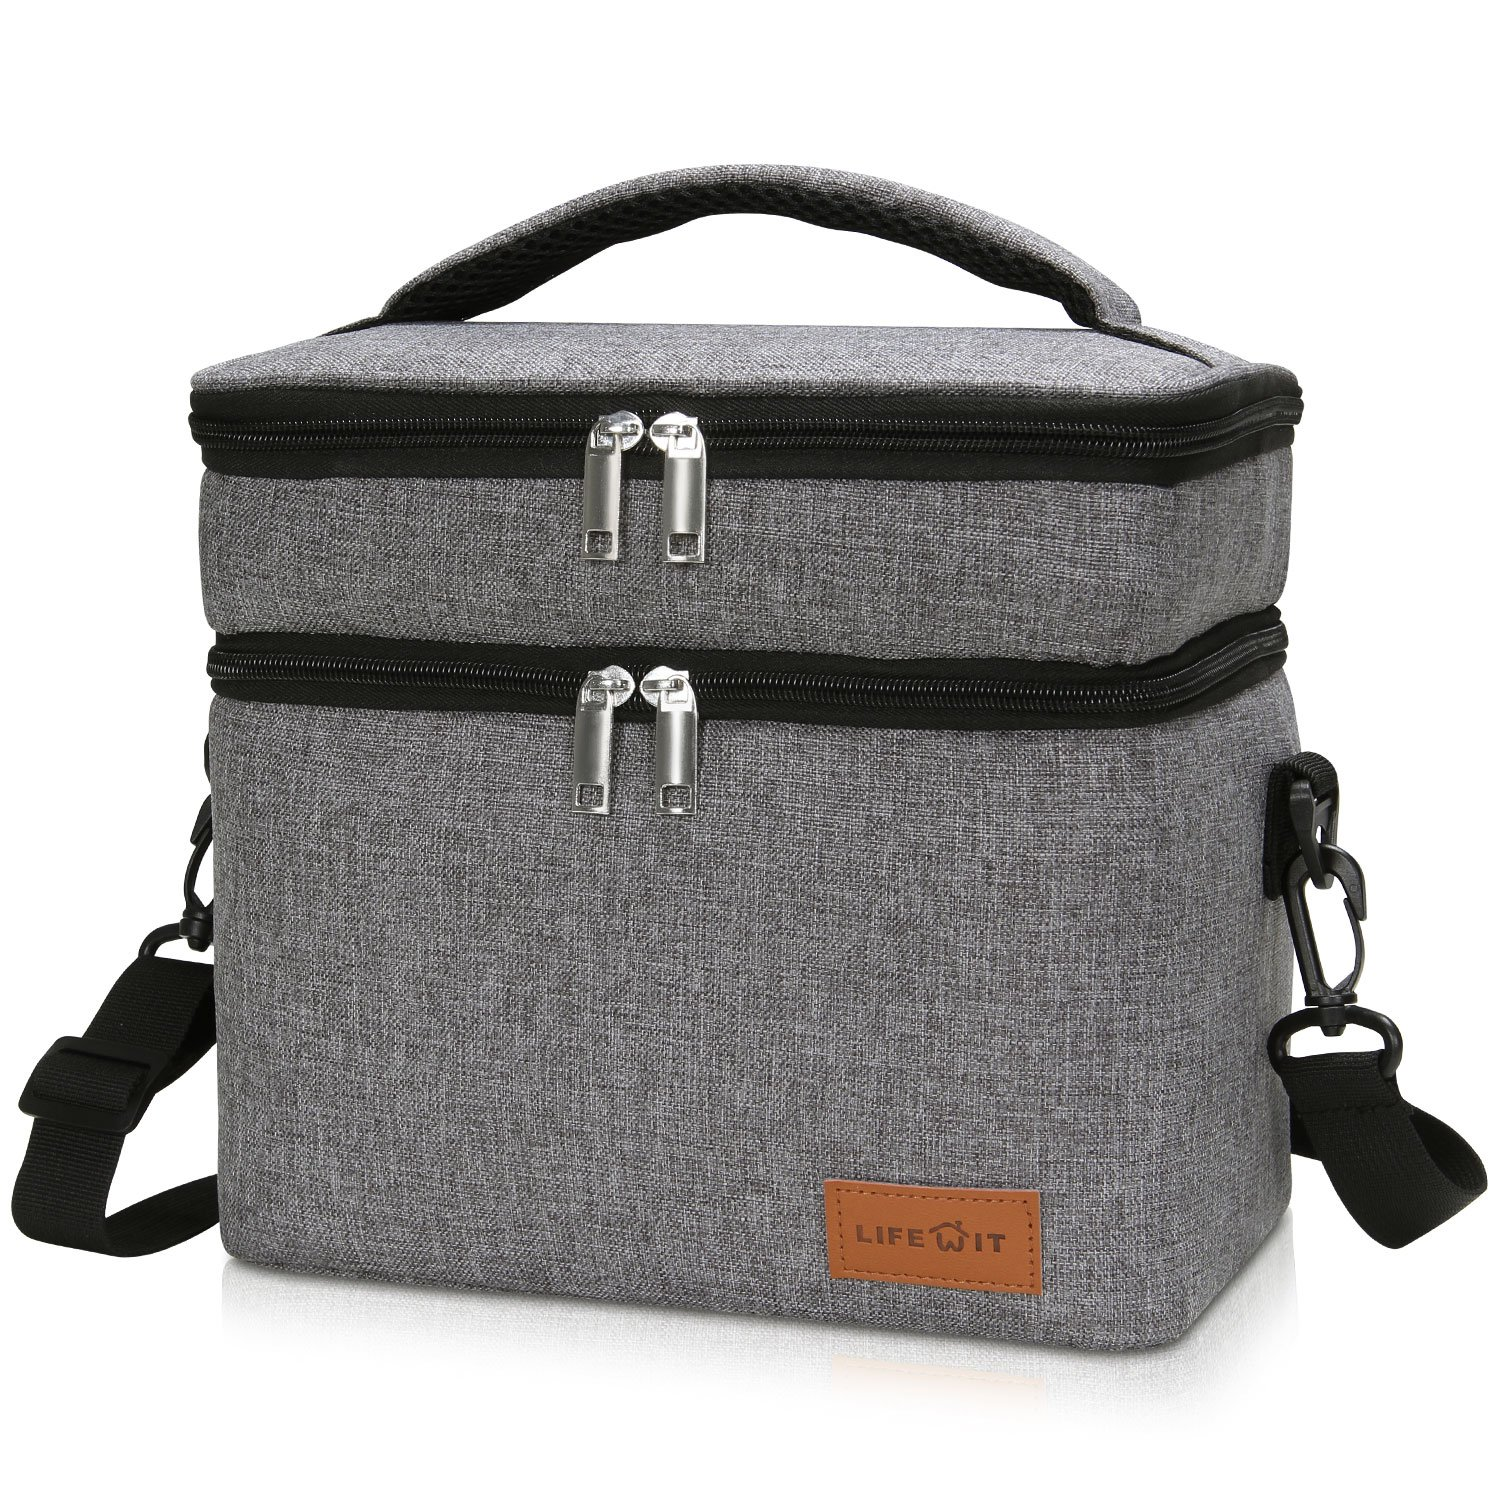 Lifewit Double Decker Lunch Box for Men Women Kids, Insulated Thermal Bento Bag, Double Section Baby Milk Bottle Bag, 7L (5-Large Gray)